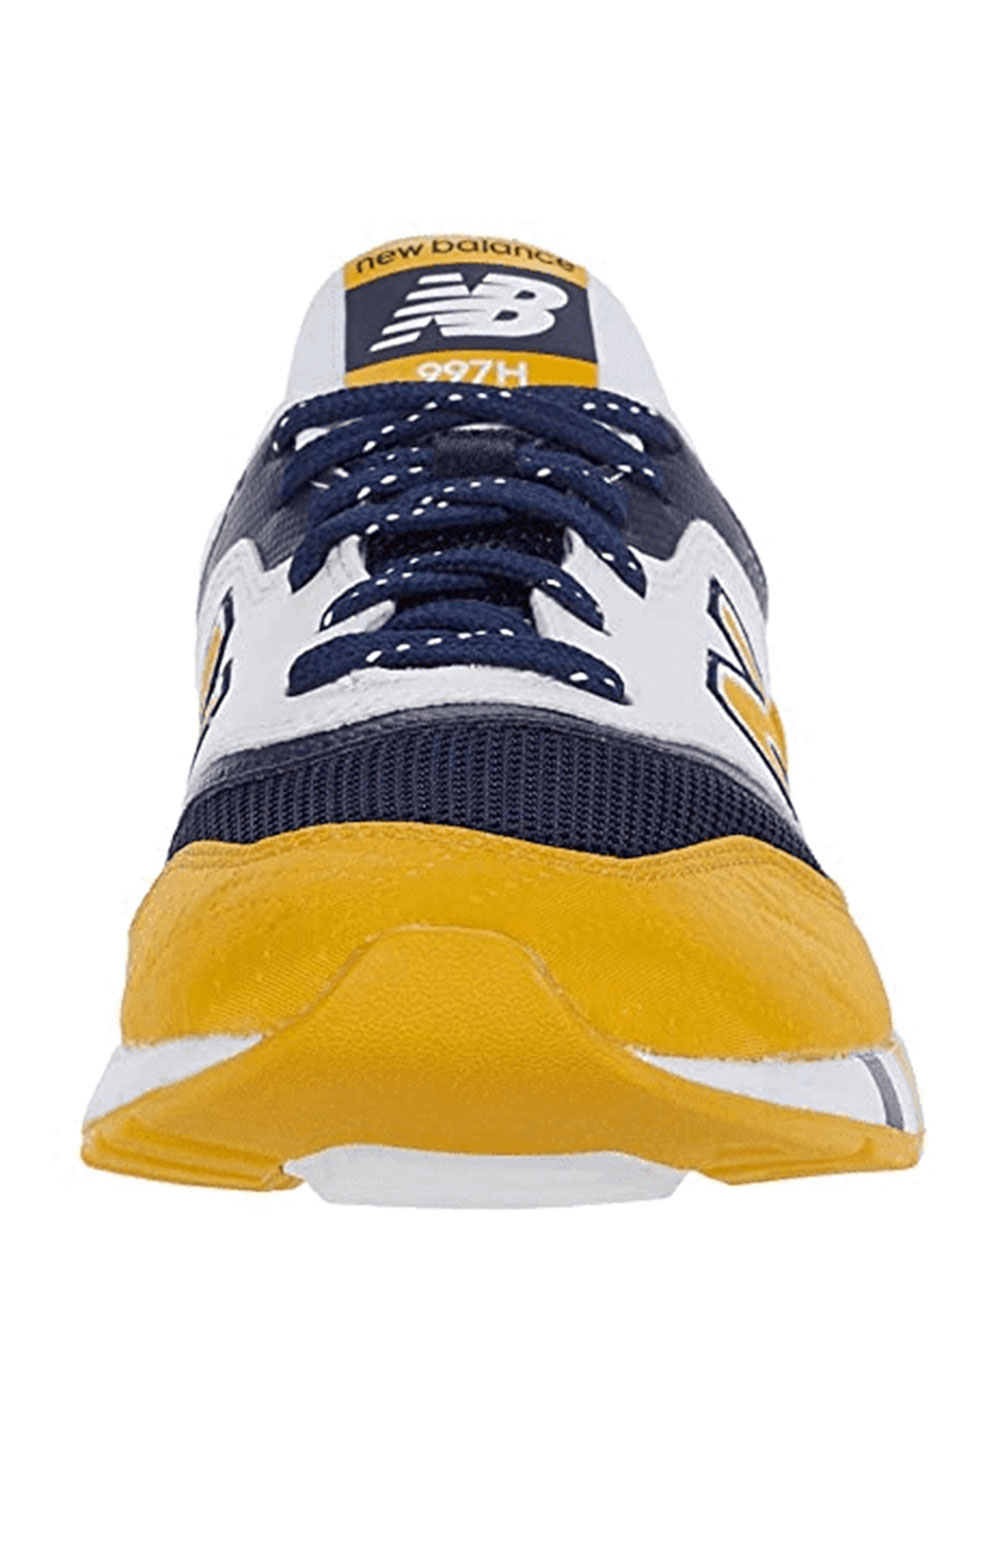 (CM997HBY) 997H Shoes - Yellow/Navy 6